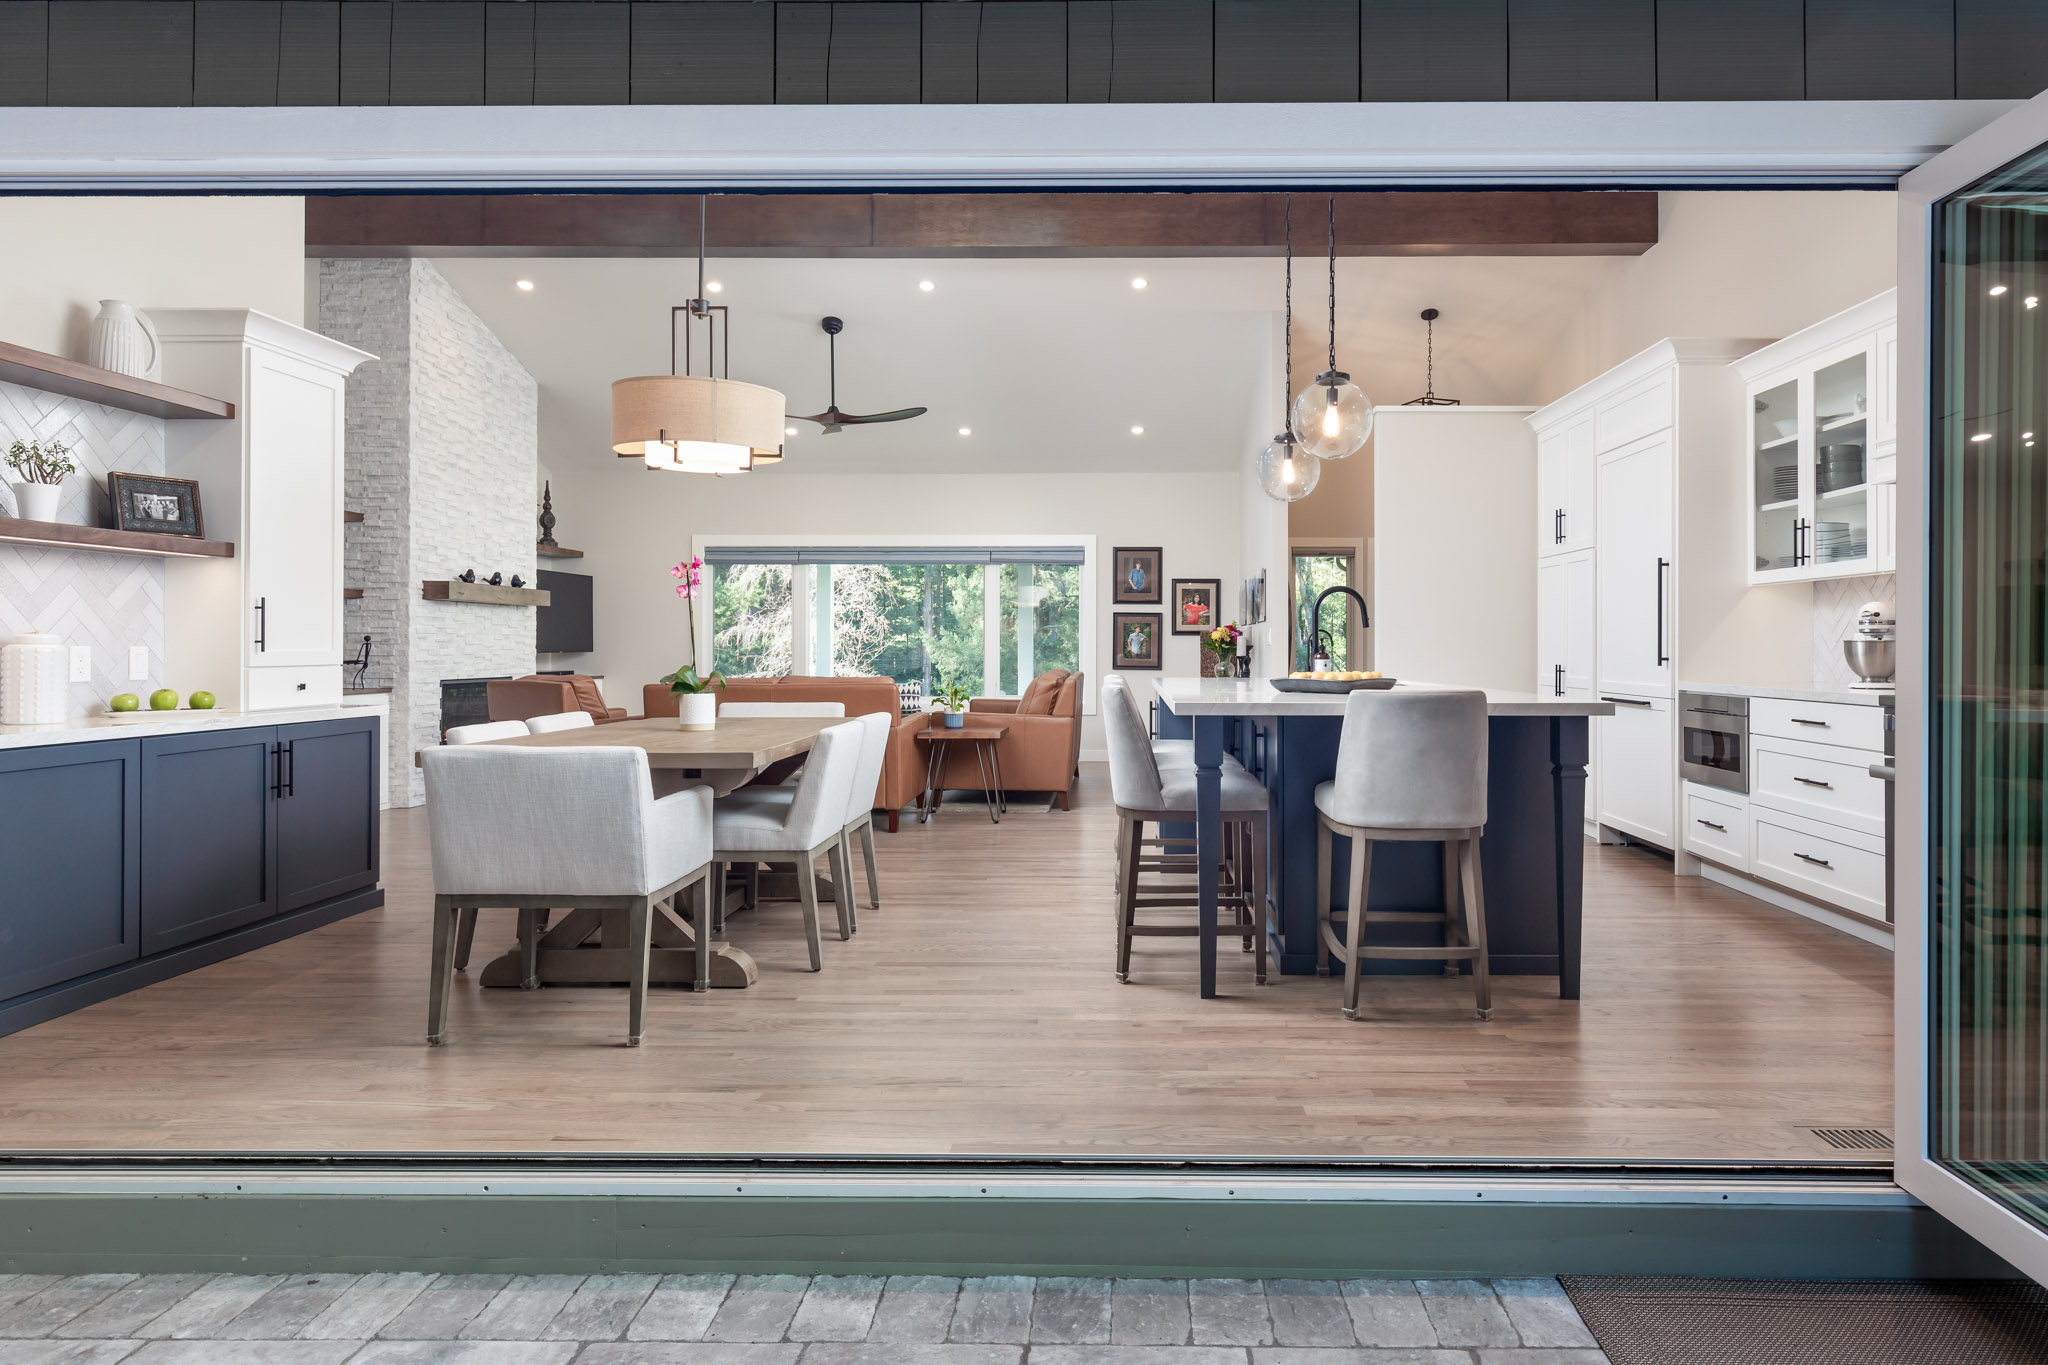 Kitchen and dining area seen through large window